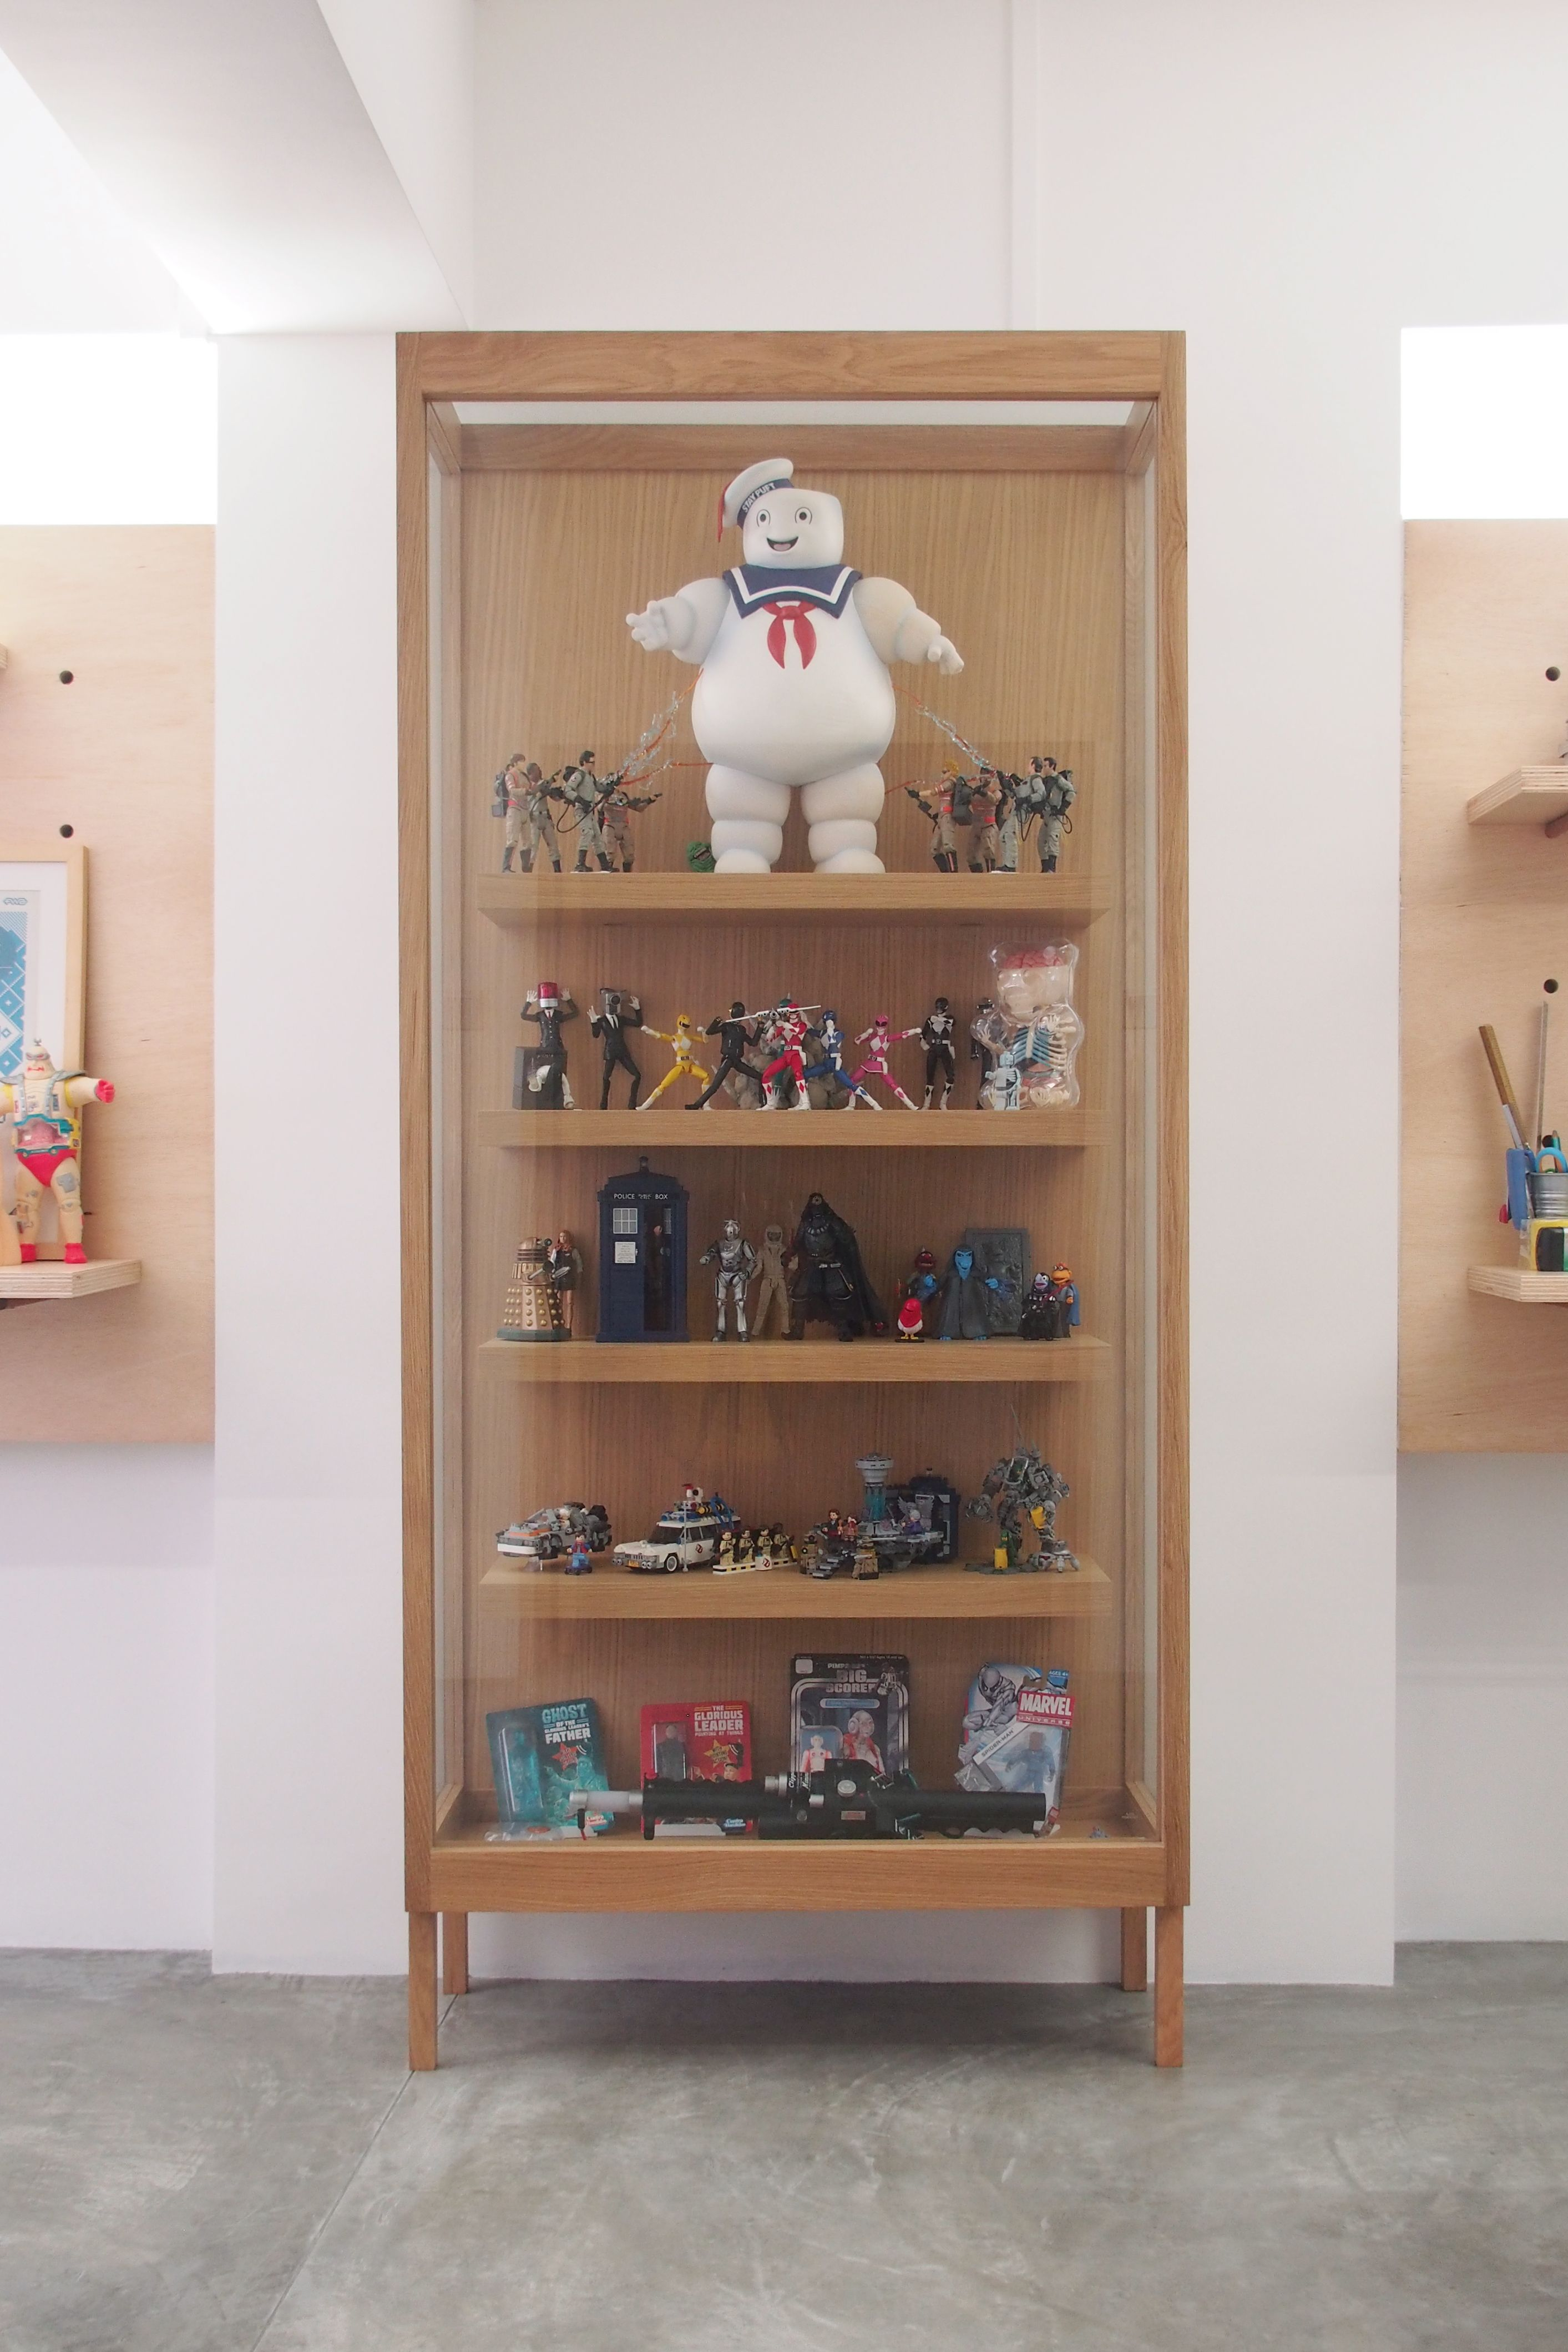 Toy Display Interior By The Association Hdb Interior Minimal Wood Oak Folk Toys Ghostbusters Pegboard Toy Display Tokidoki Home Decor